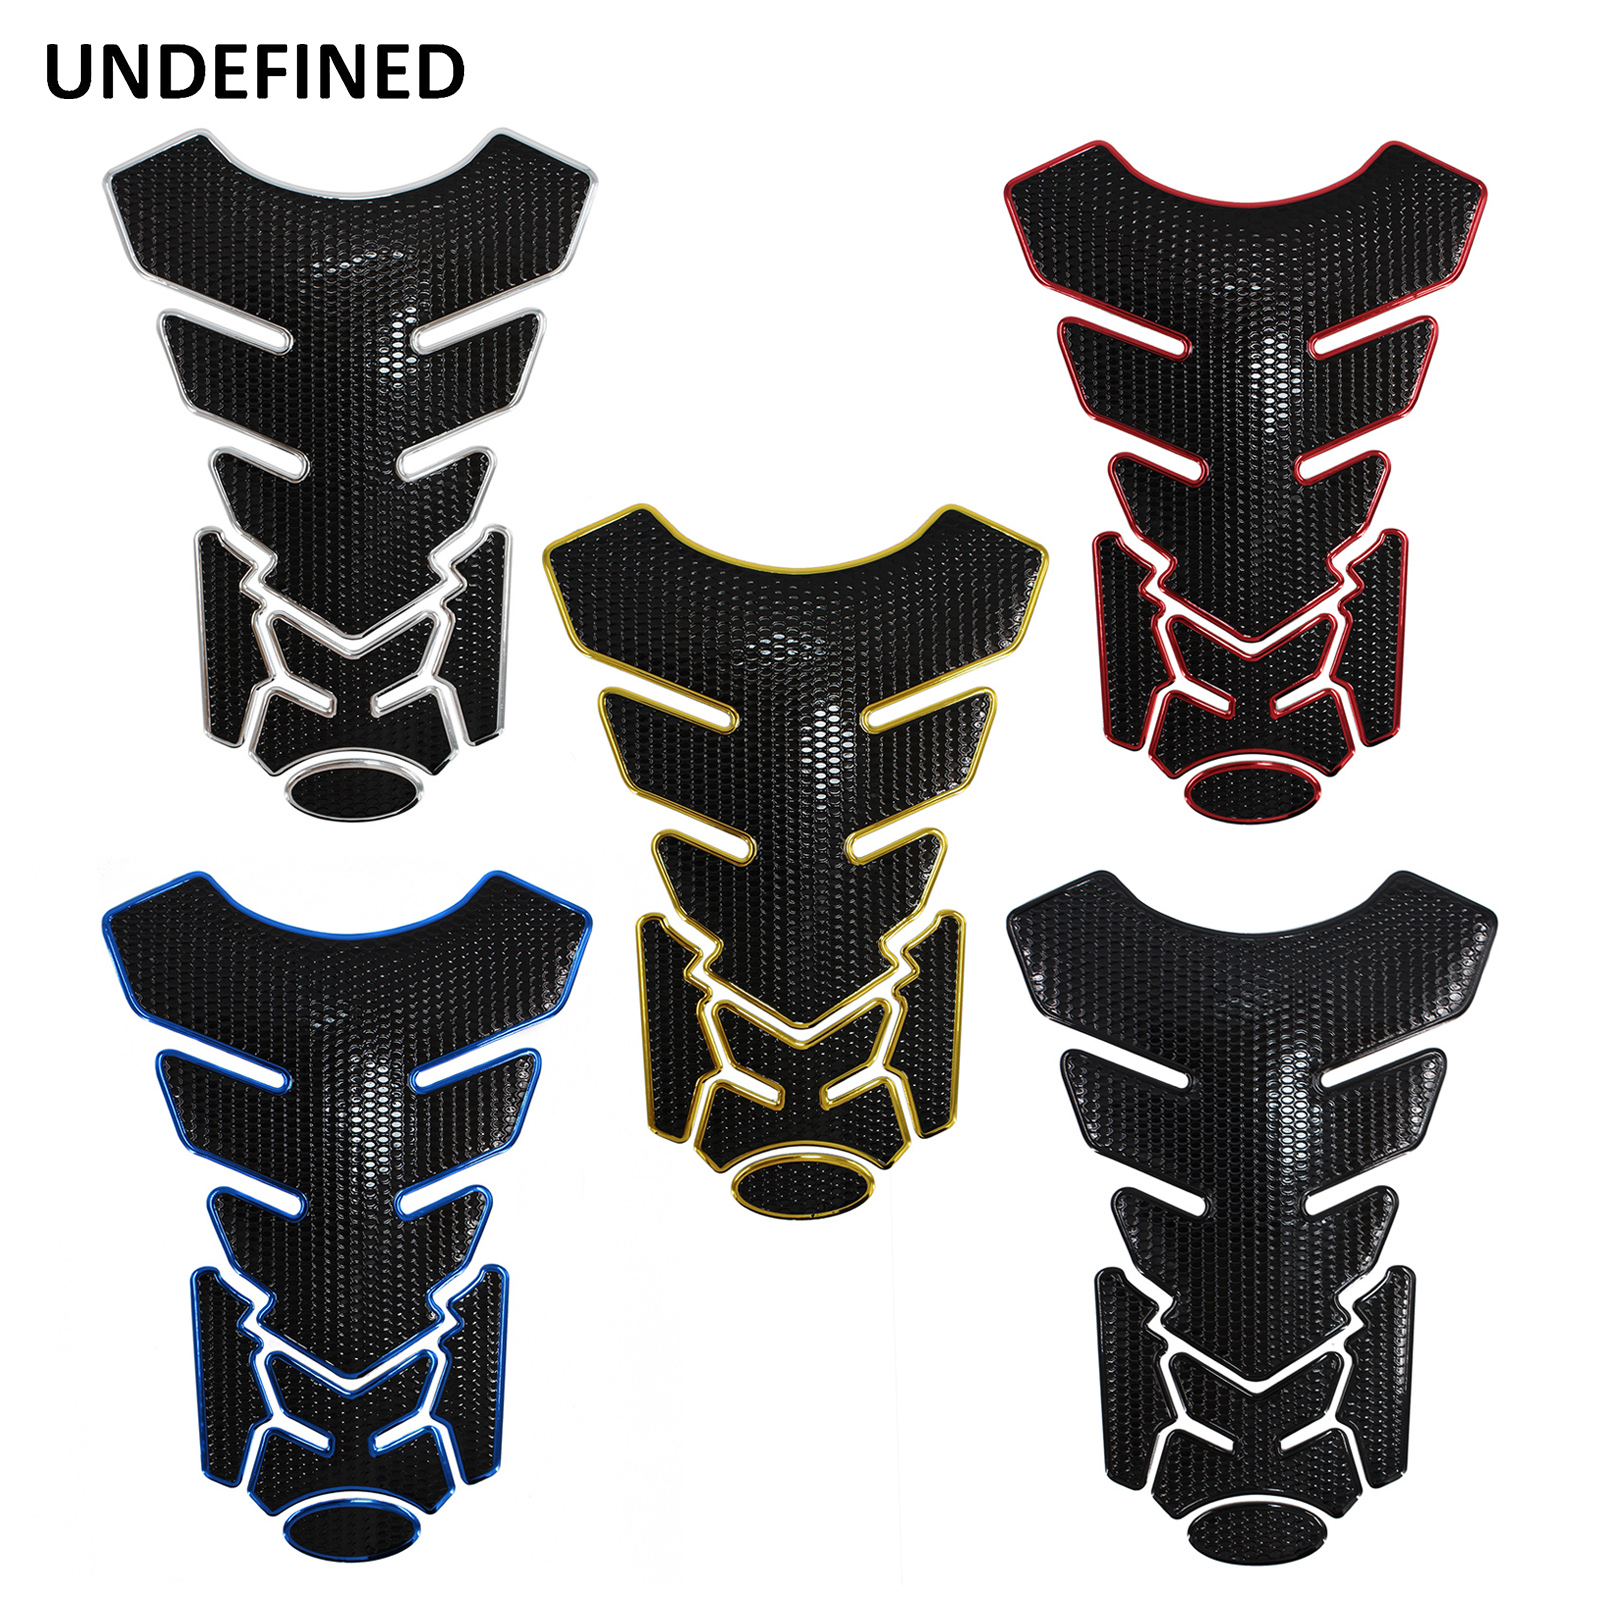 Motorcycle 3D Rubber Sticker Gas Fuel Oil Tank Pad Protector Cover Decals Case For Honda Yamaha KTM BMW Kawasaki Suzuki Tankpad